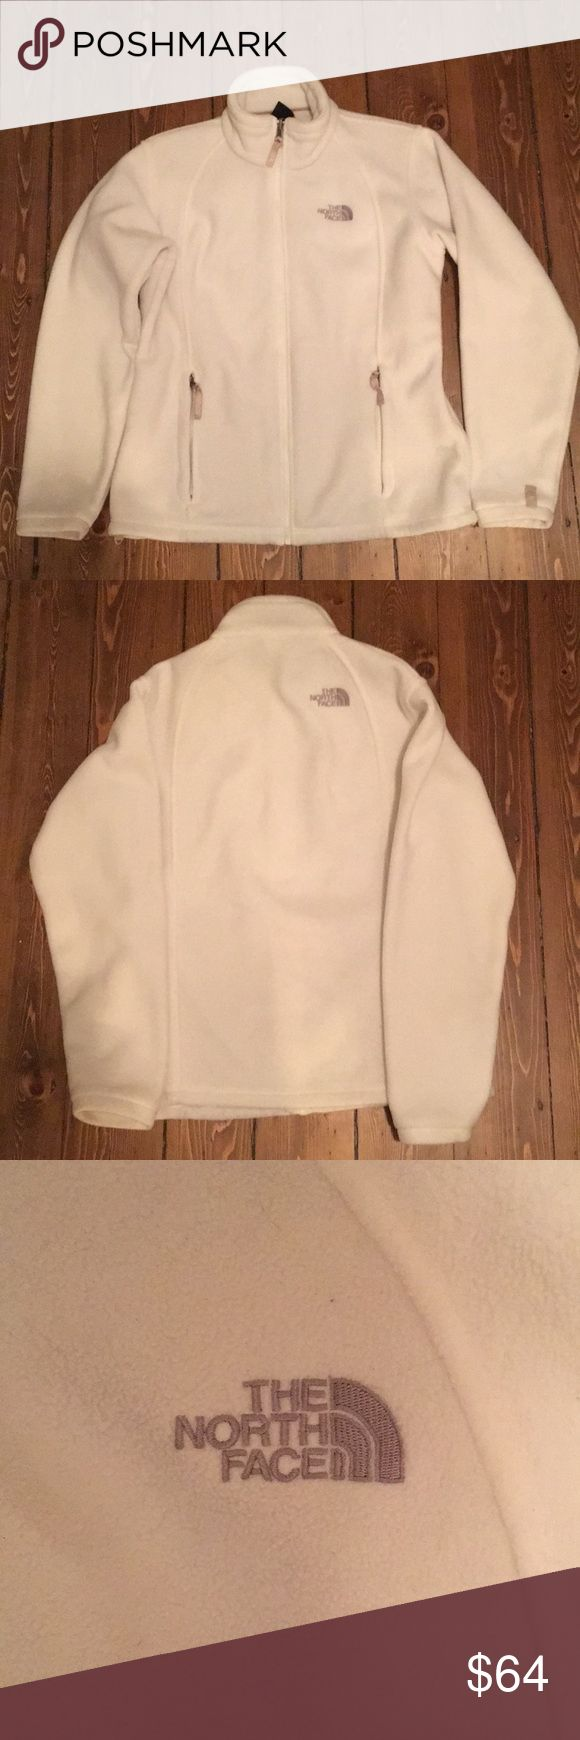 """The North Face White Fleece Zip Up Stay stylish and warm this winter! Wonderful all white North Face zip up fleece jacket. Has beige zipper pulls and beige detail along the zipper. 2 Large side zipper pockets. Gray """"The North Face"""" lettering. 100% polyester. Size L. Worn a bunch but in great shape! No rips or stains. Fleece is still pretty soft. Happy shopping! The North Face Jackets & Coats"""